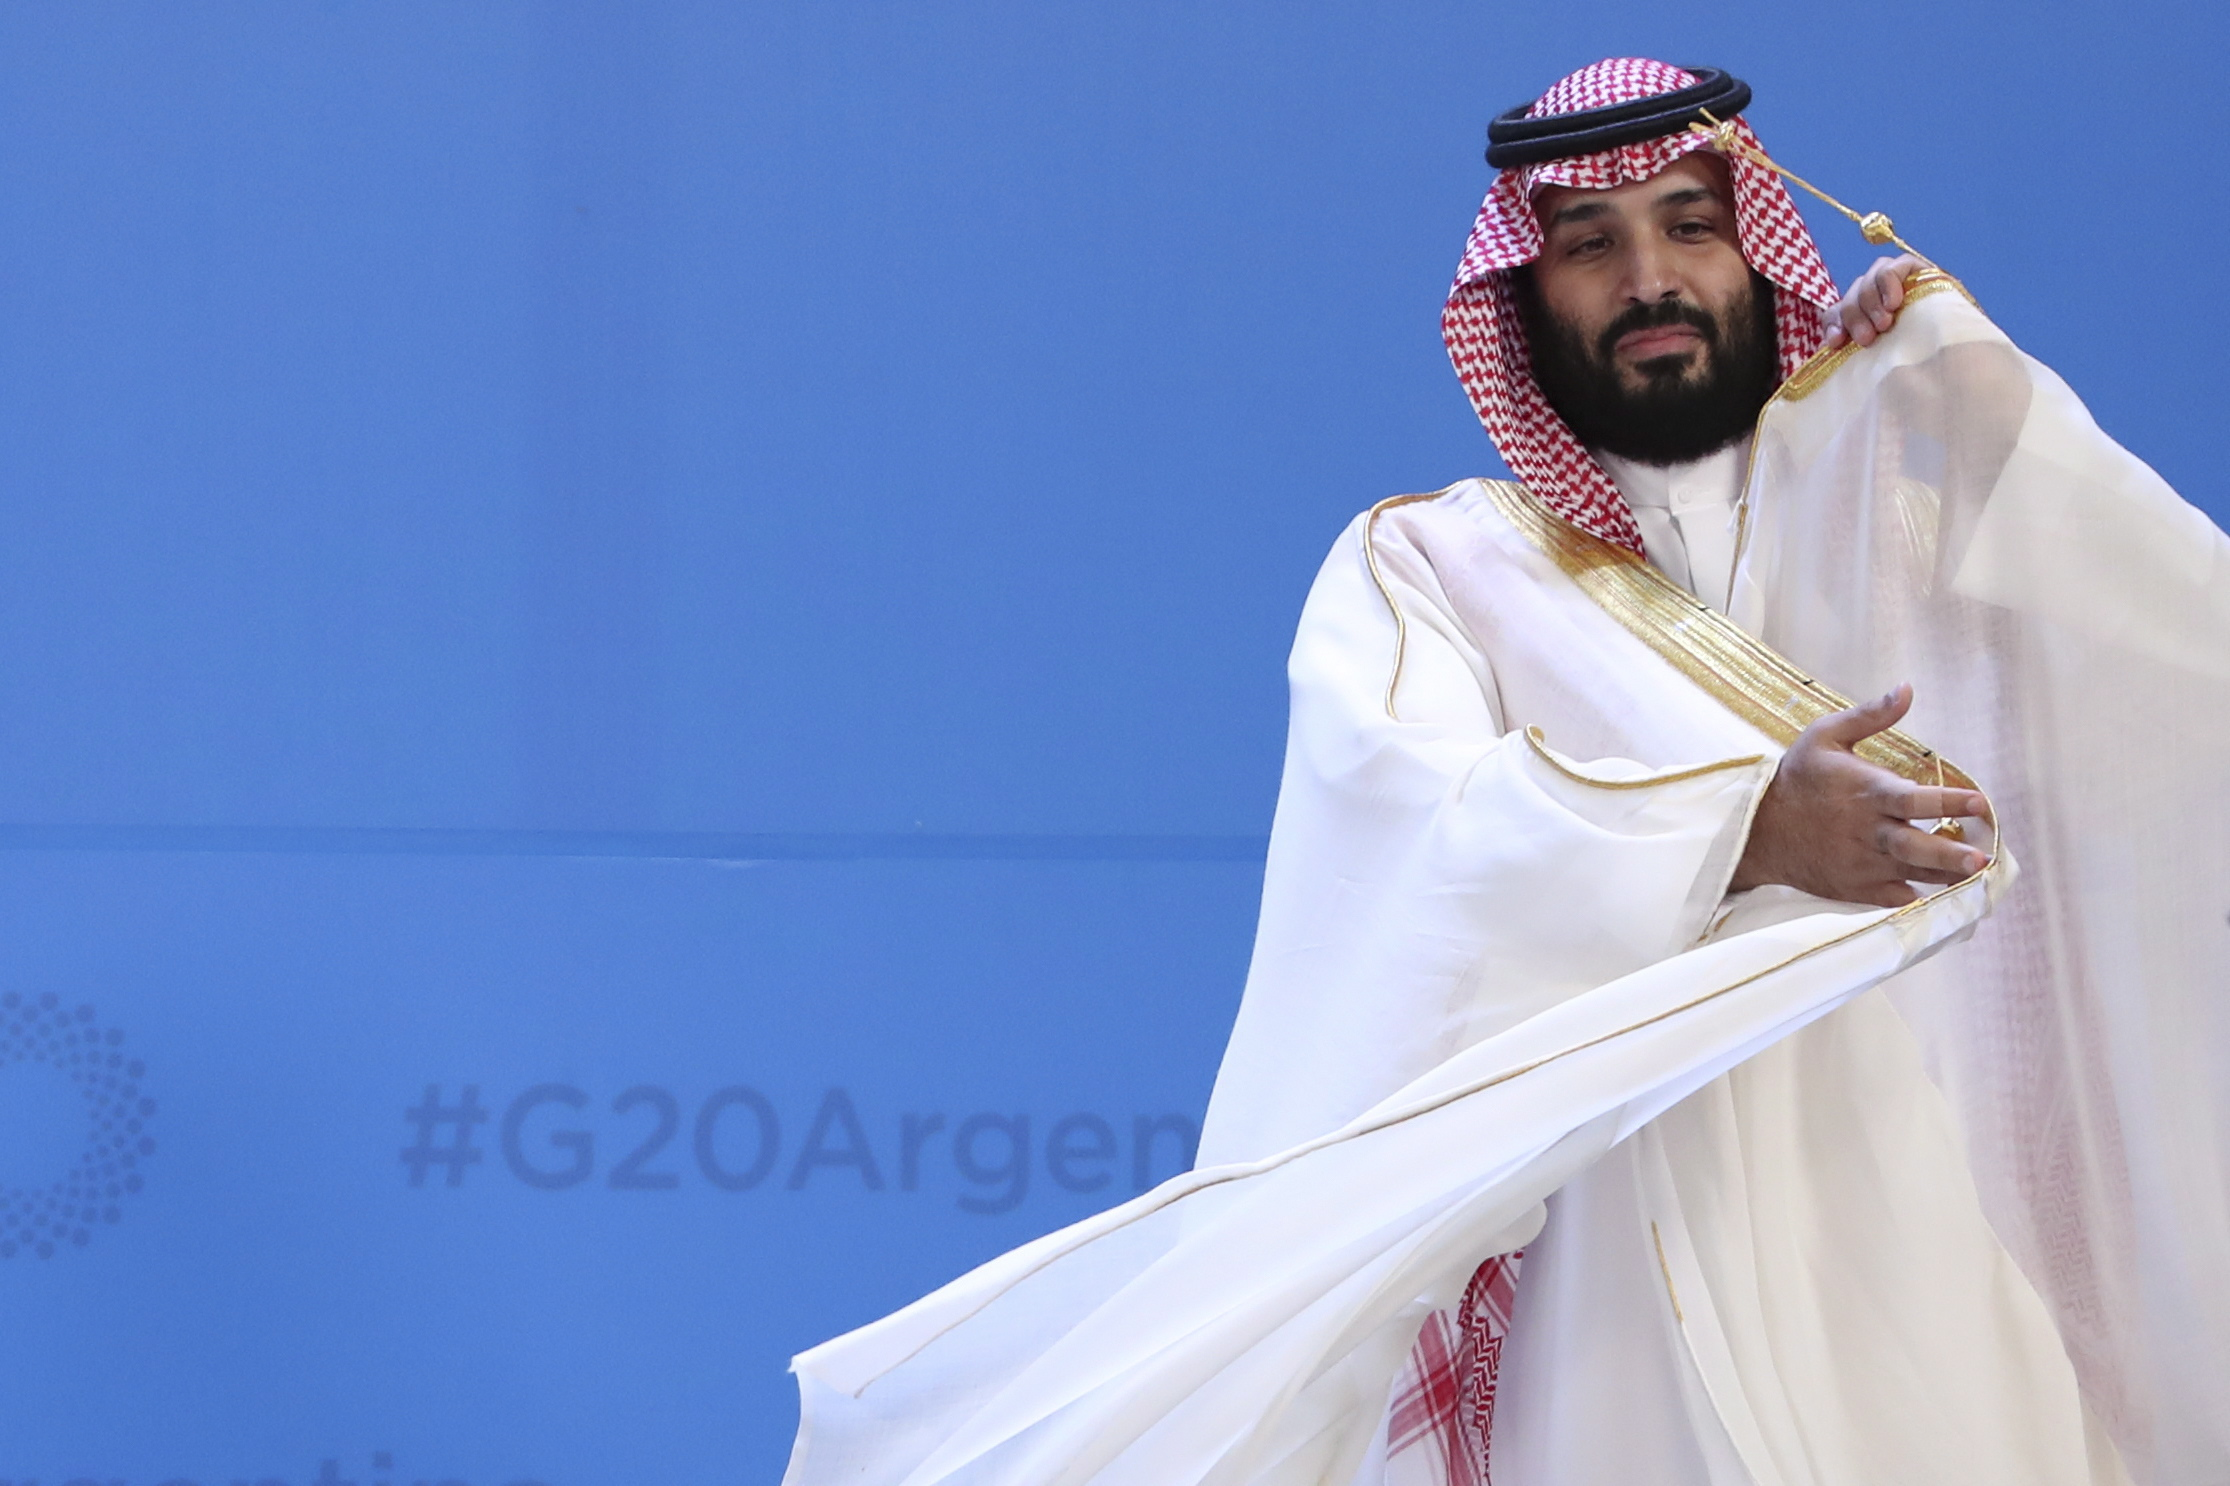 Saudi Crown Prince receives 'firm message' on Khashoggi probe at G20 summit